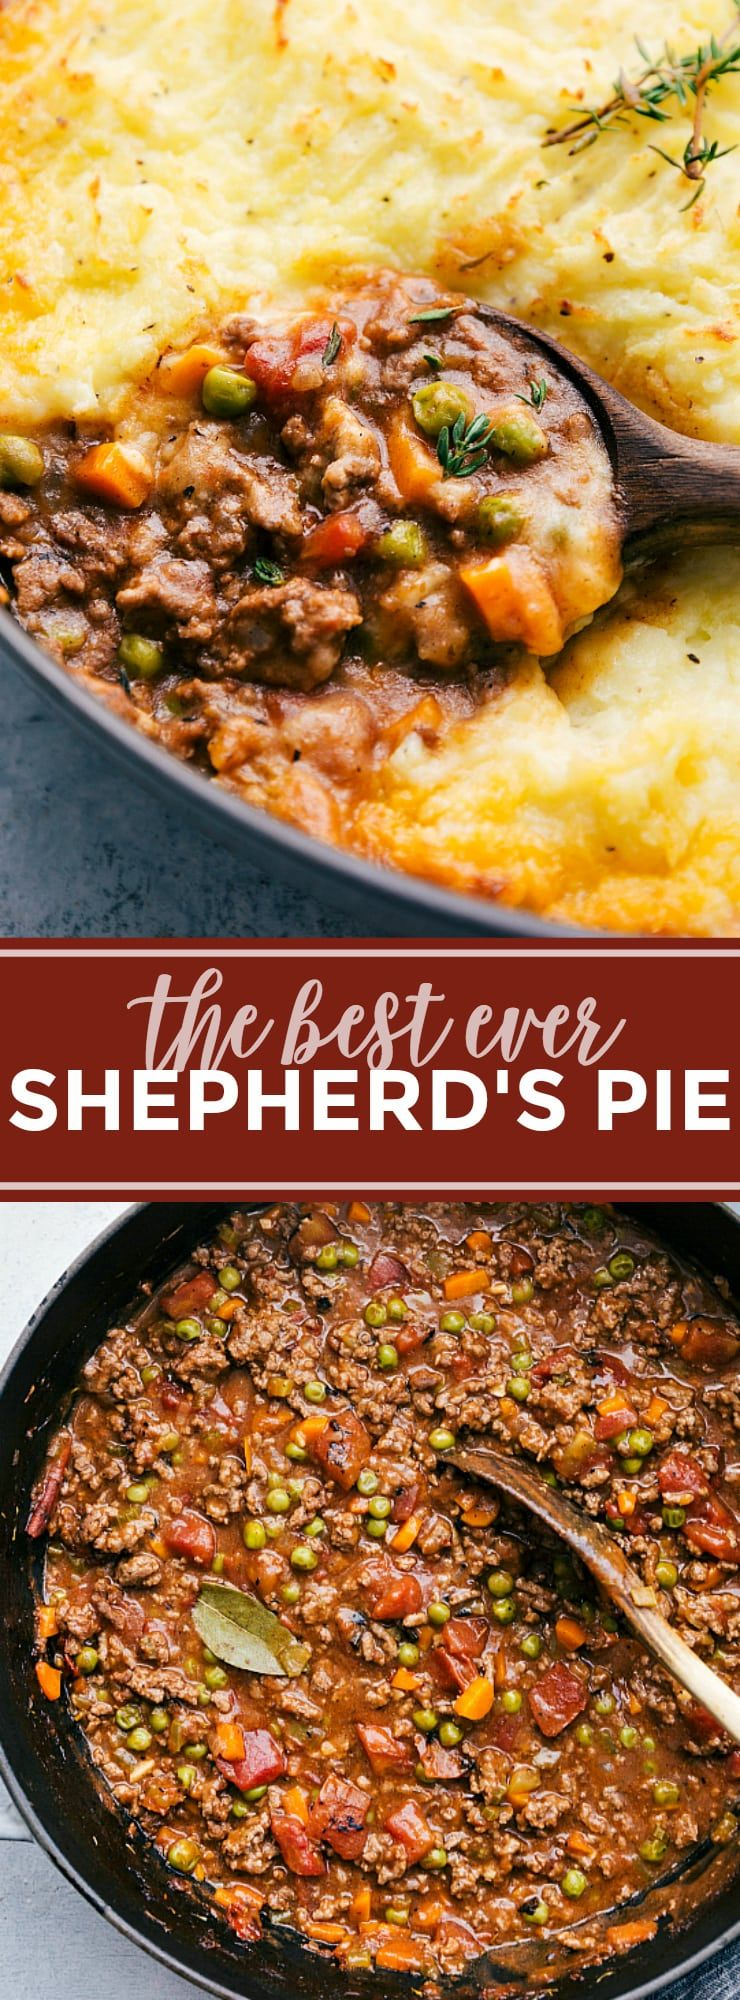 The ultimate BEST EVER Shepherd's Pie! A delicious and simple dinner! via chelseasmessyapron.com #shepherd #pie #dinner #casserole #easy #quick #holiday #leftover #leftovers #beef #gravy #vegetables #healthy #potatoes #mashed #kidfriendly #shepardspie